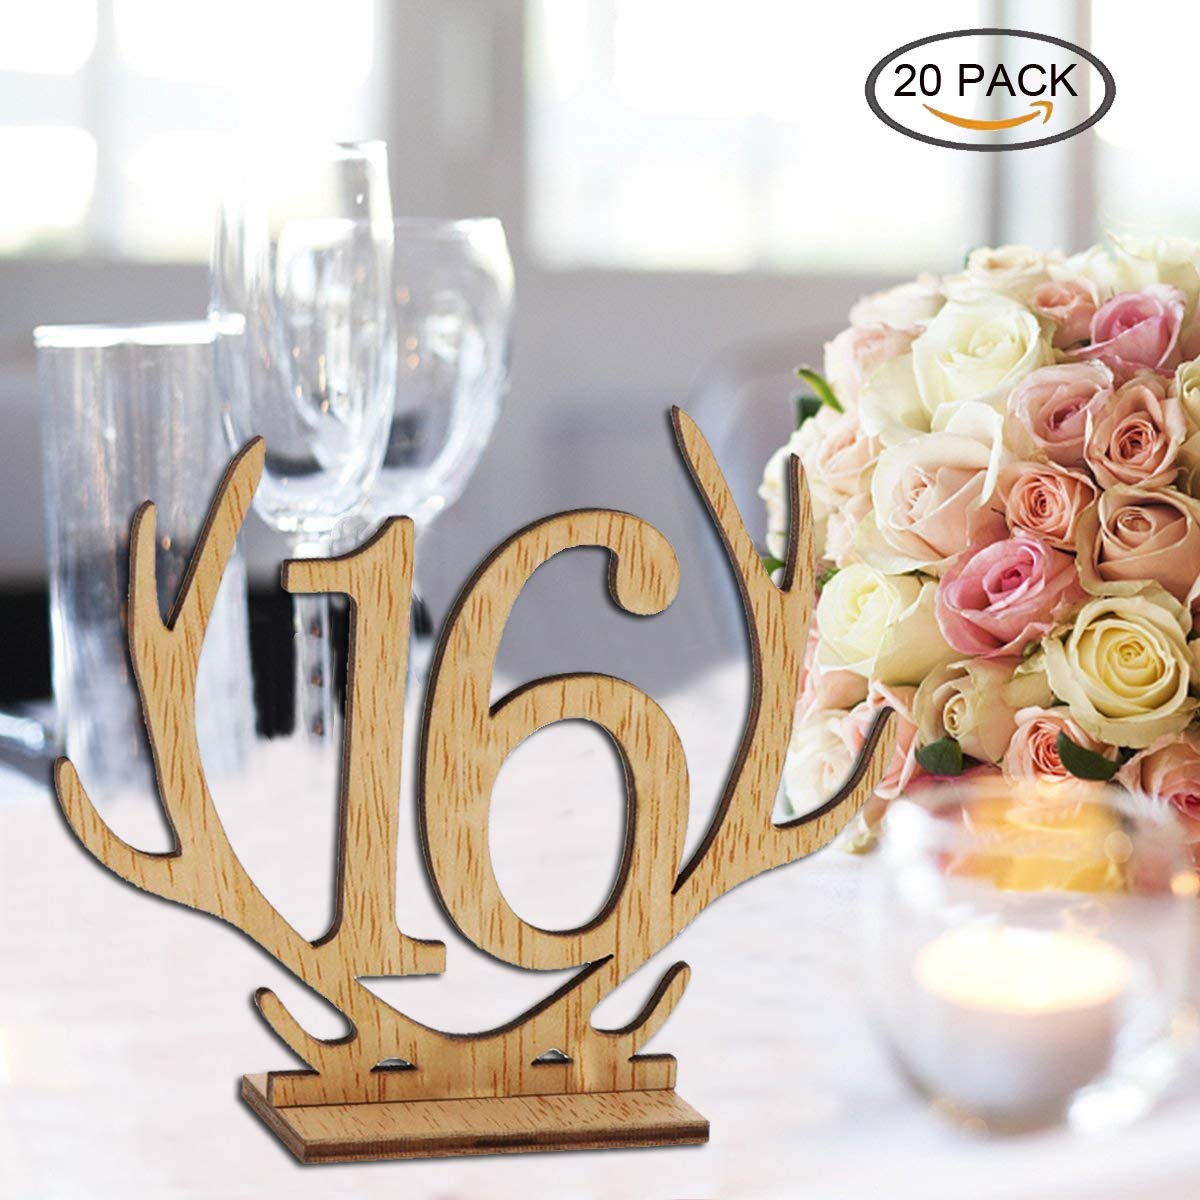 Wellinc Table Numbers 20 Pack (Number 1-20) Wedding Wood Table Numbers Unique Design Party Table Cards for Wedding Events and Banquet